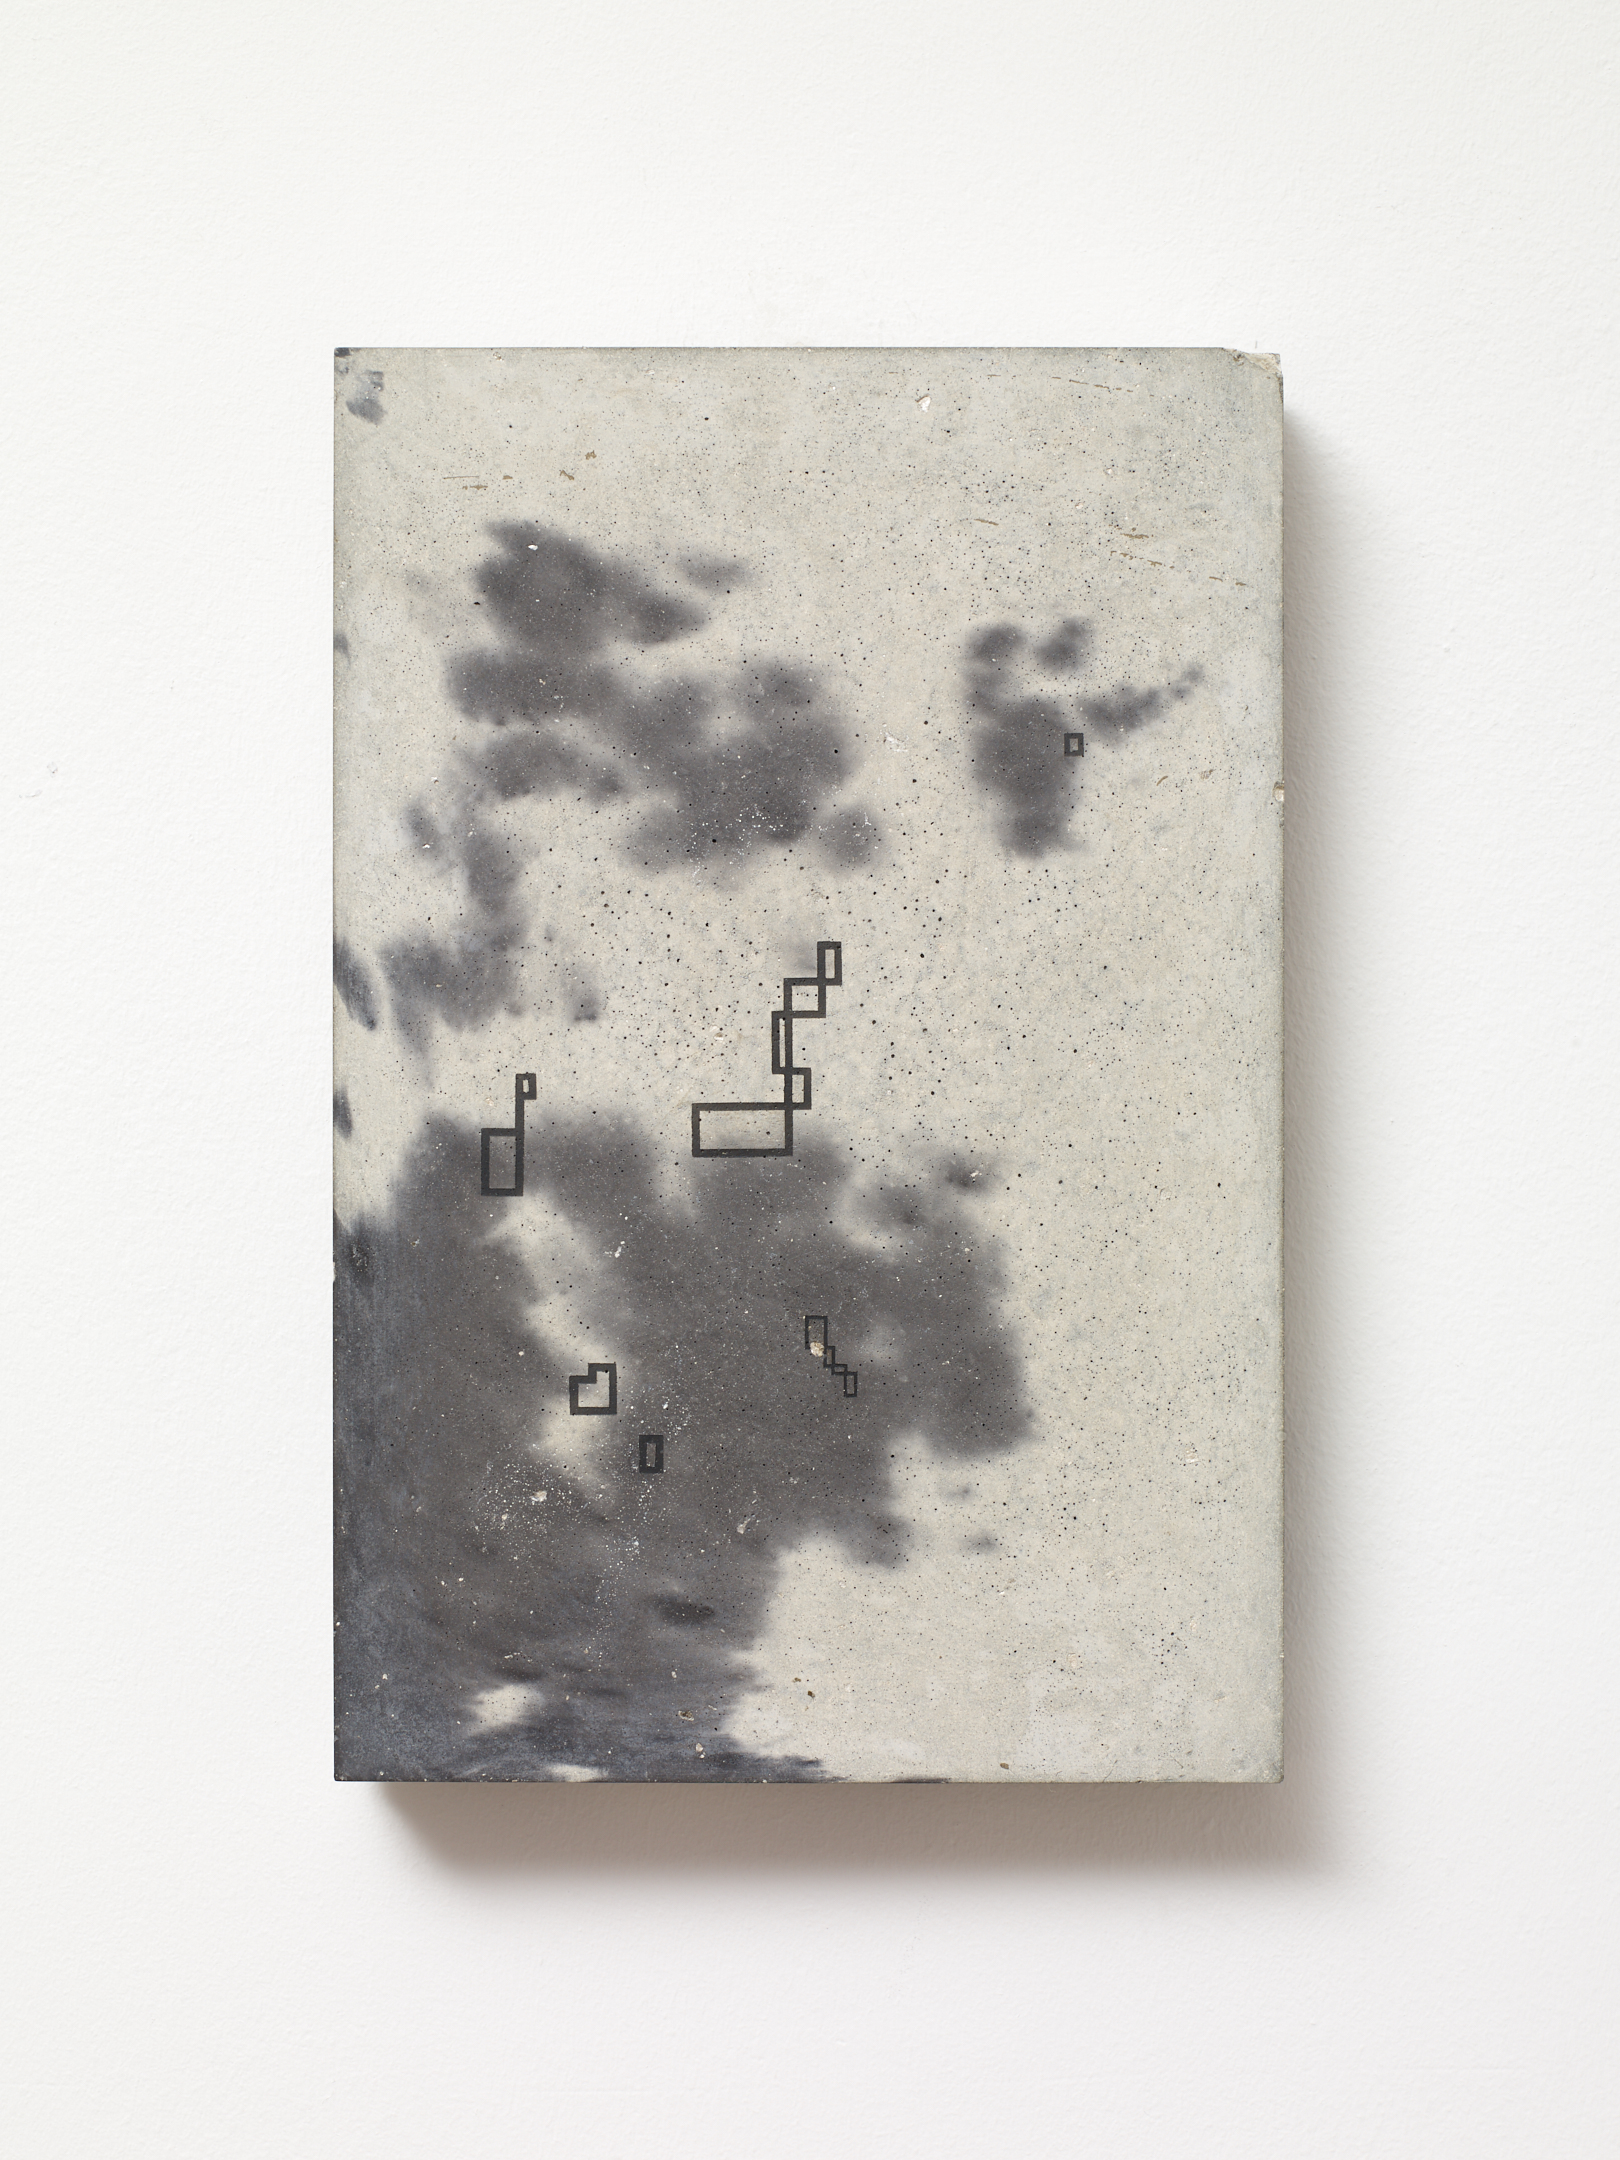 Victor Seaward  Clouds , 2018 Smoke residue on cast pigmented concrete panel 23.5 x 16 cm